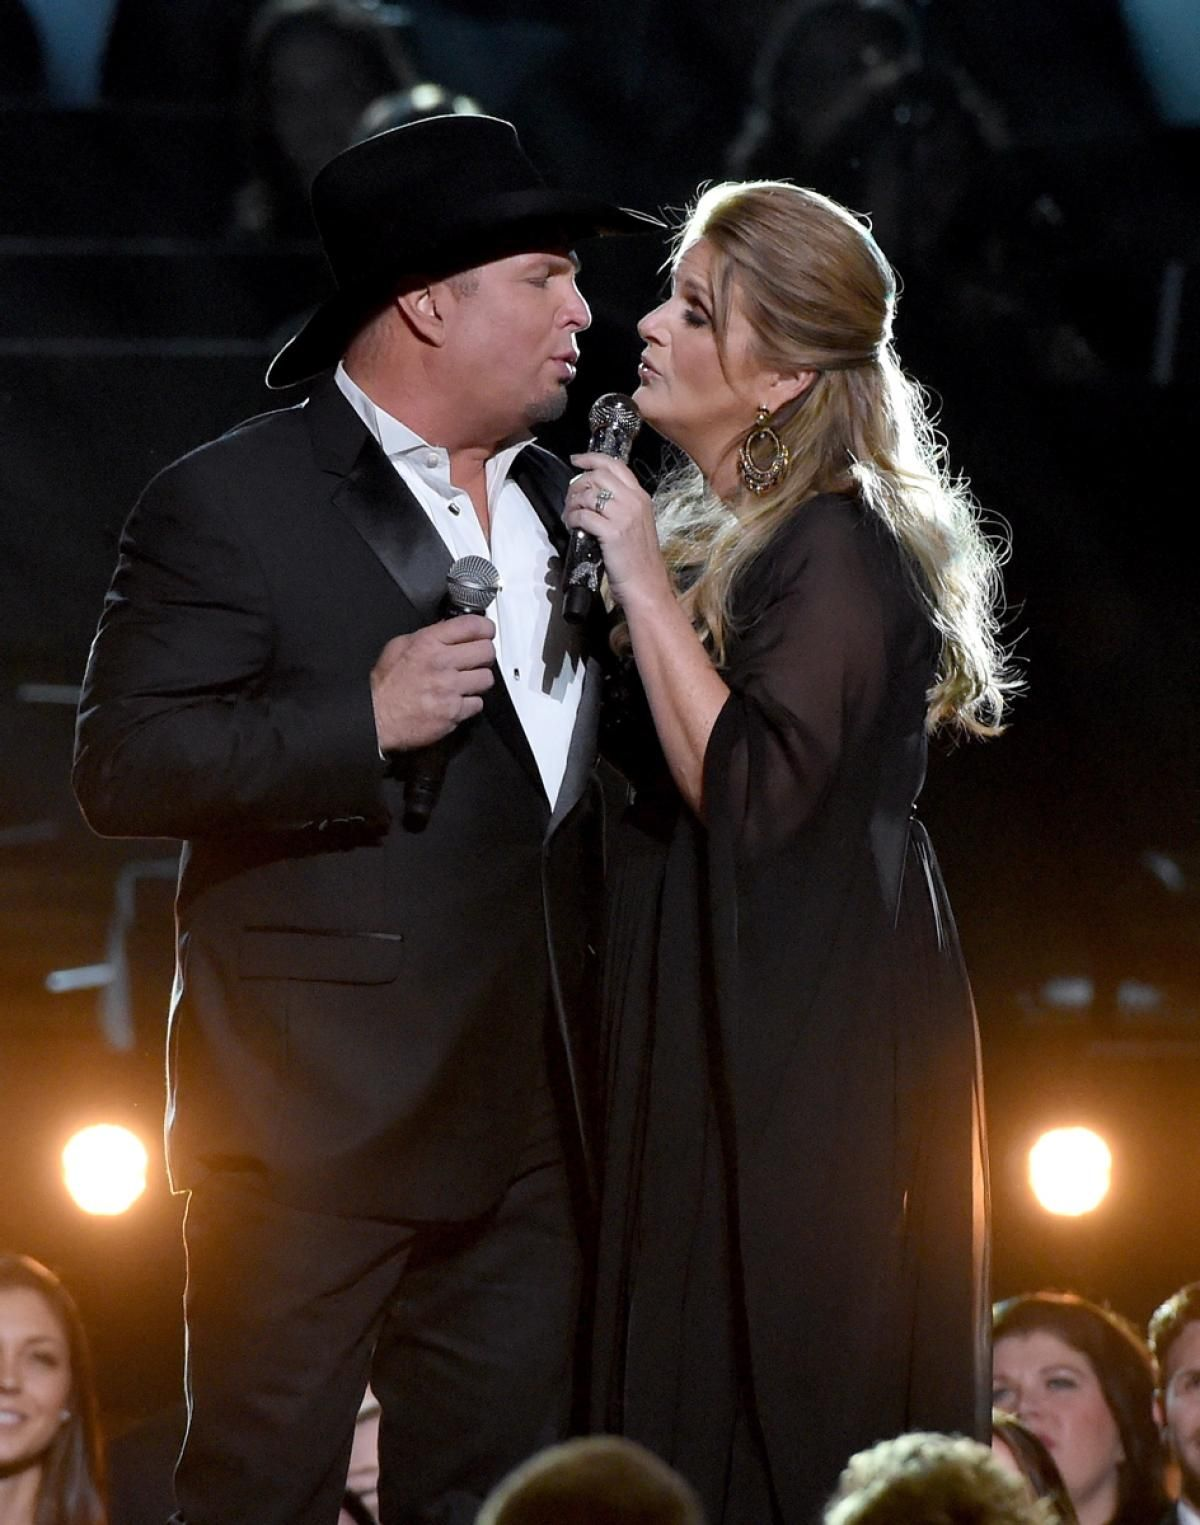 Garth Brooks and Trisha Yearwood get close on stage as